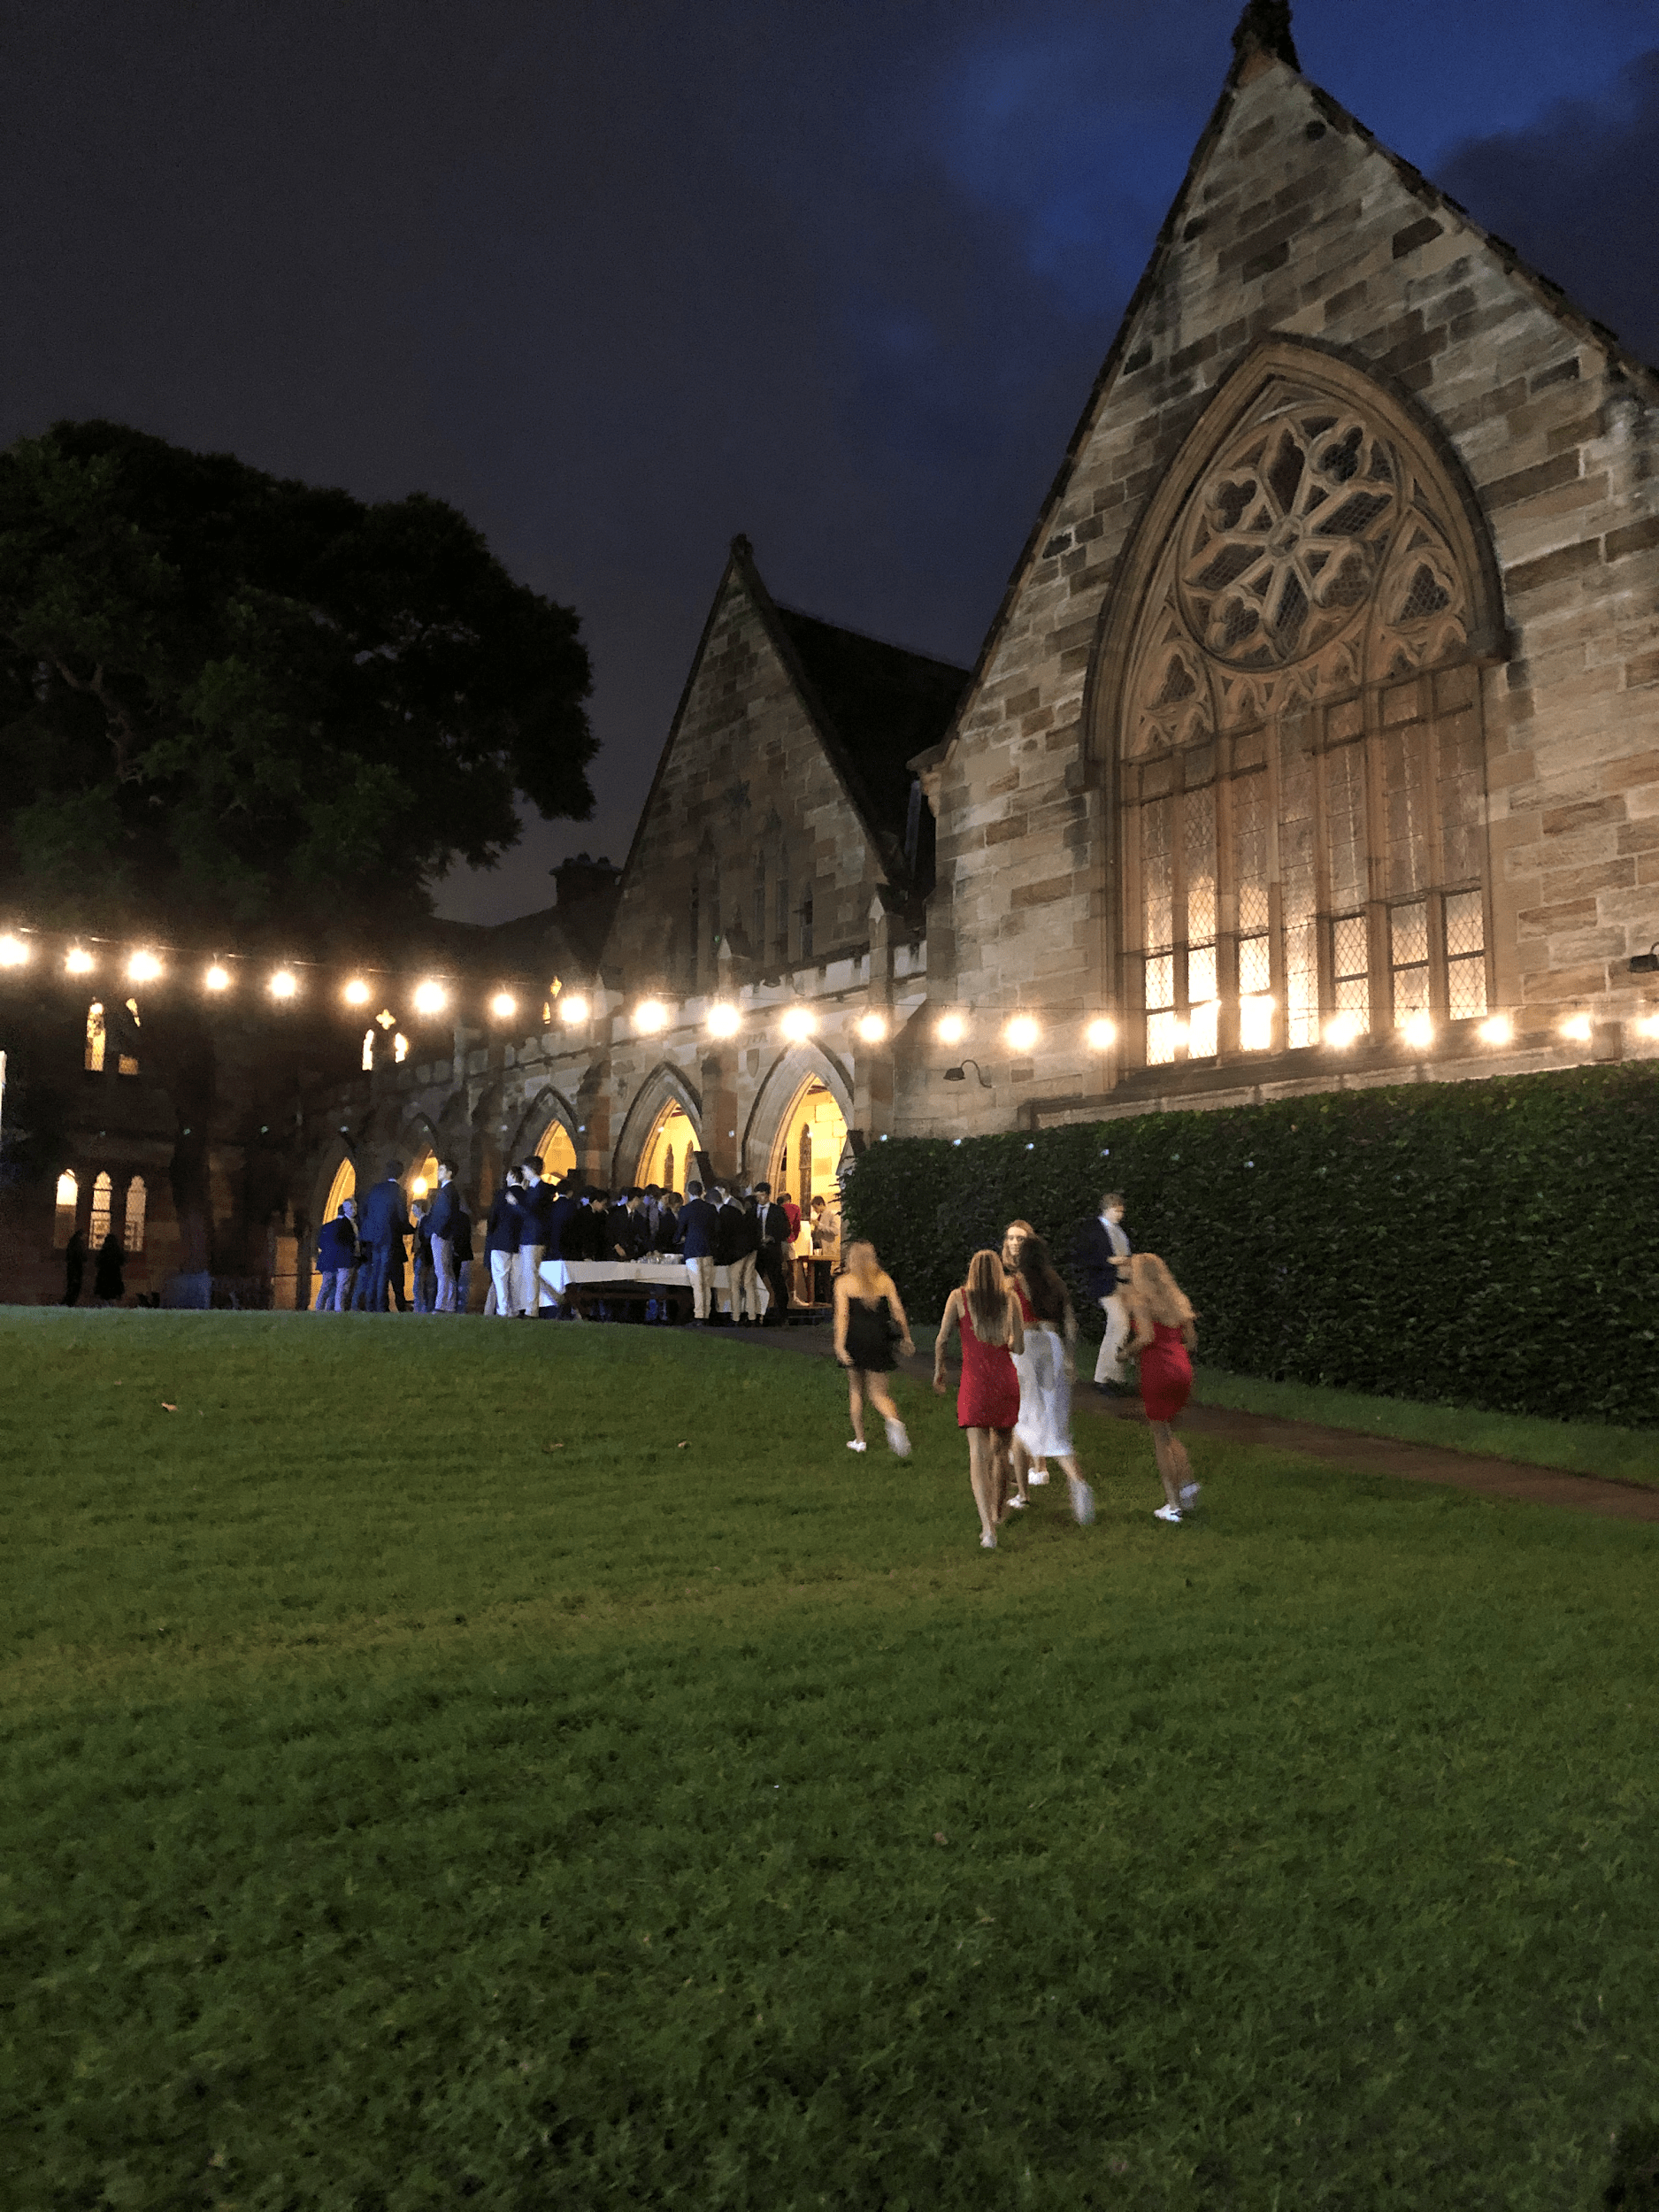 Old college building at night with string lights outside and students dressed up